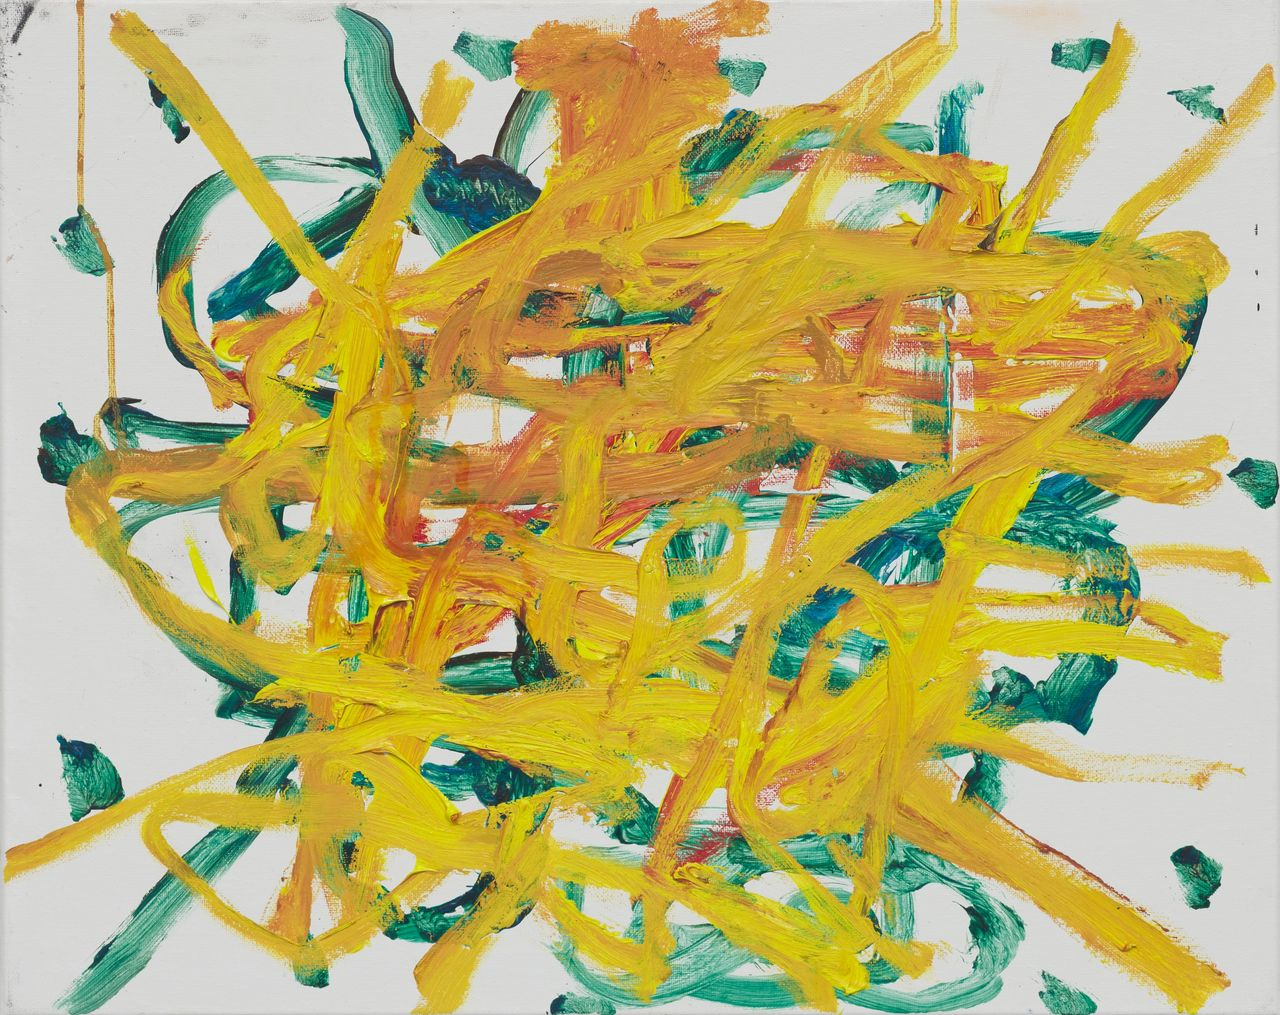 TJ Bohm, 'Untitled,' 2019, mix media, oil paint, acrylic, charcoal, polyurethane, unique 16h x 20w in. Image courtesy of the Artist.